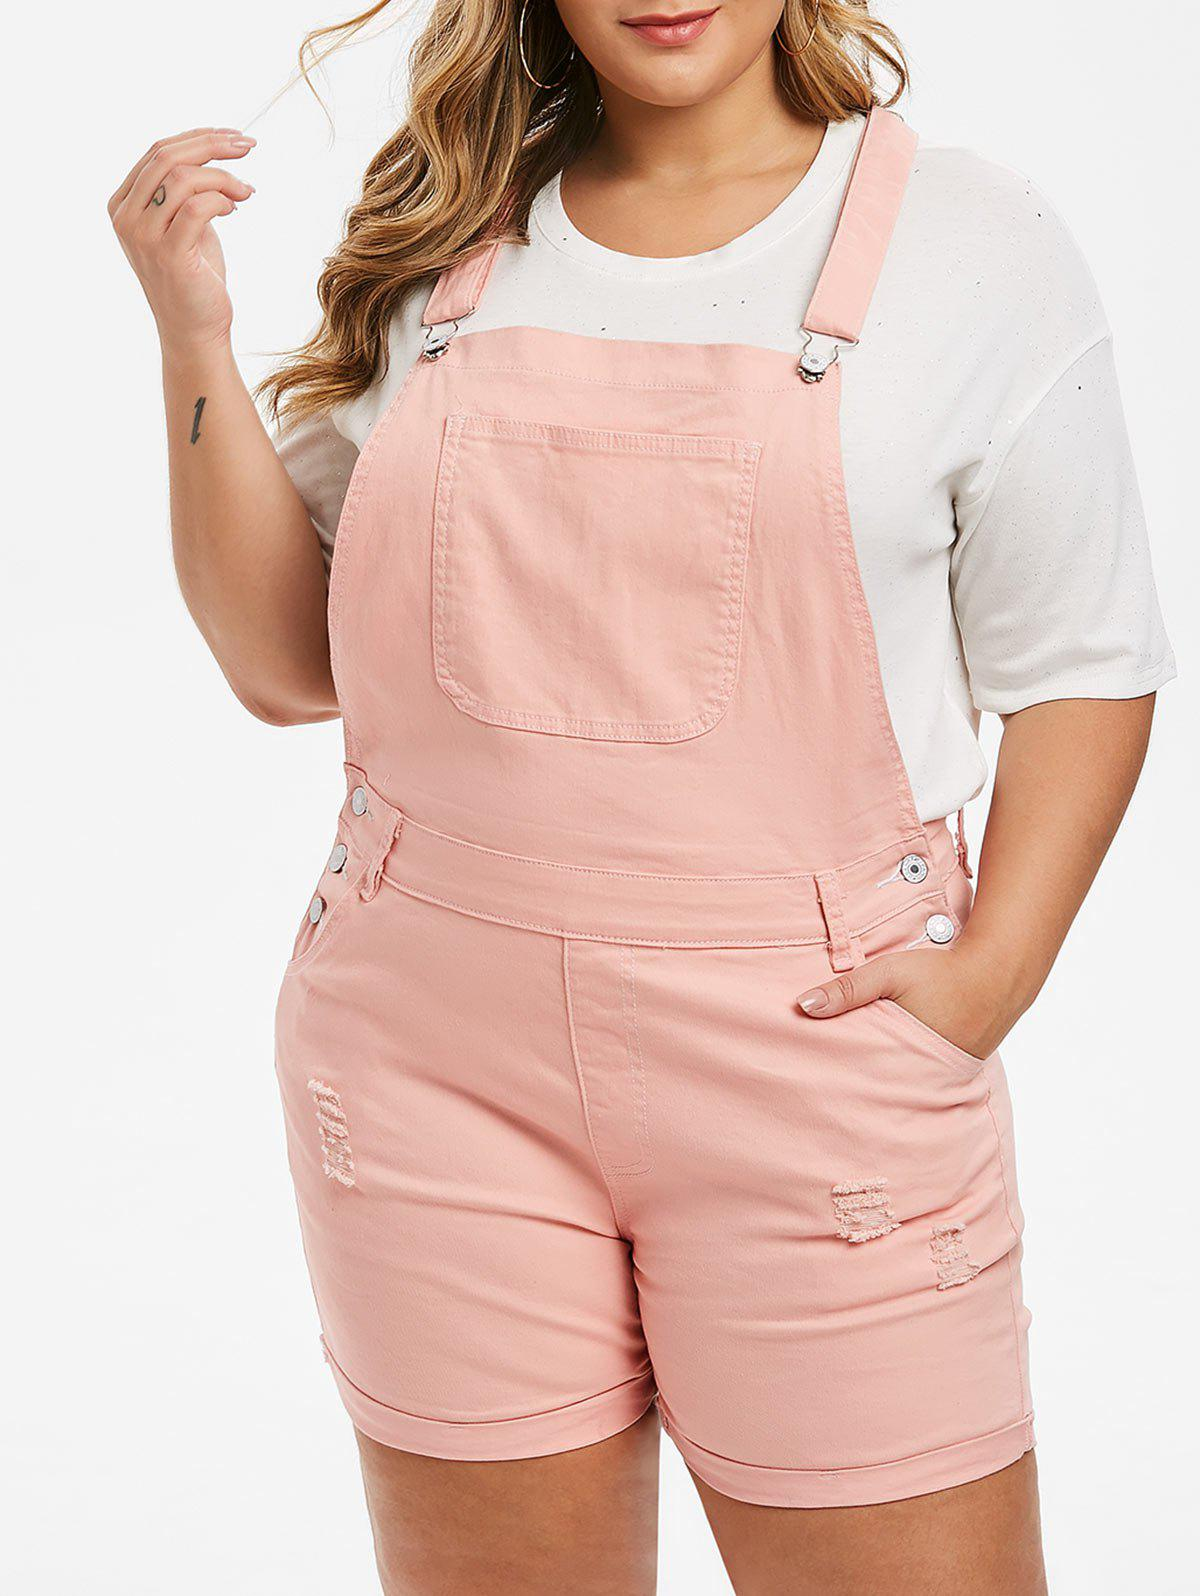 Discount Plus Size Cuffed Distressed Denim Overall Shorts